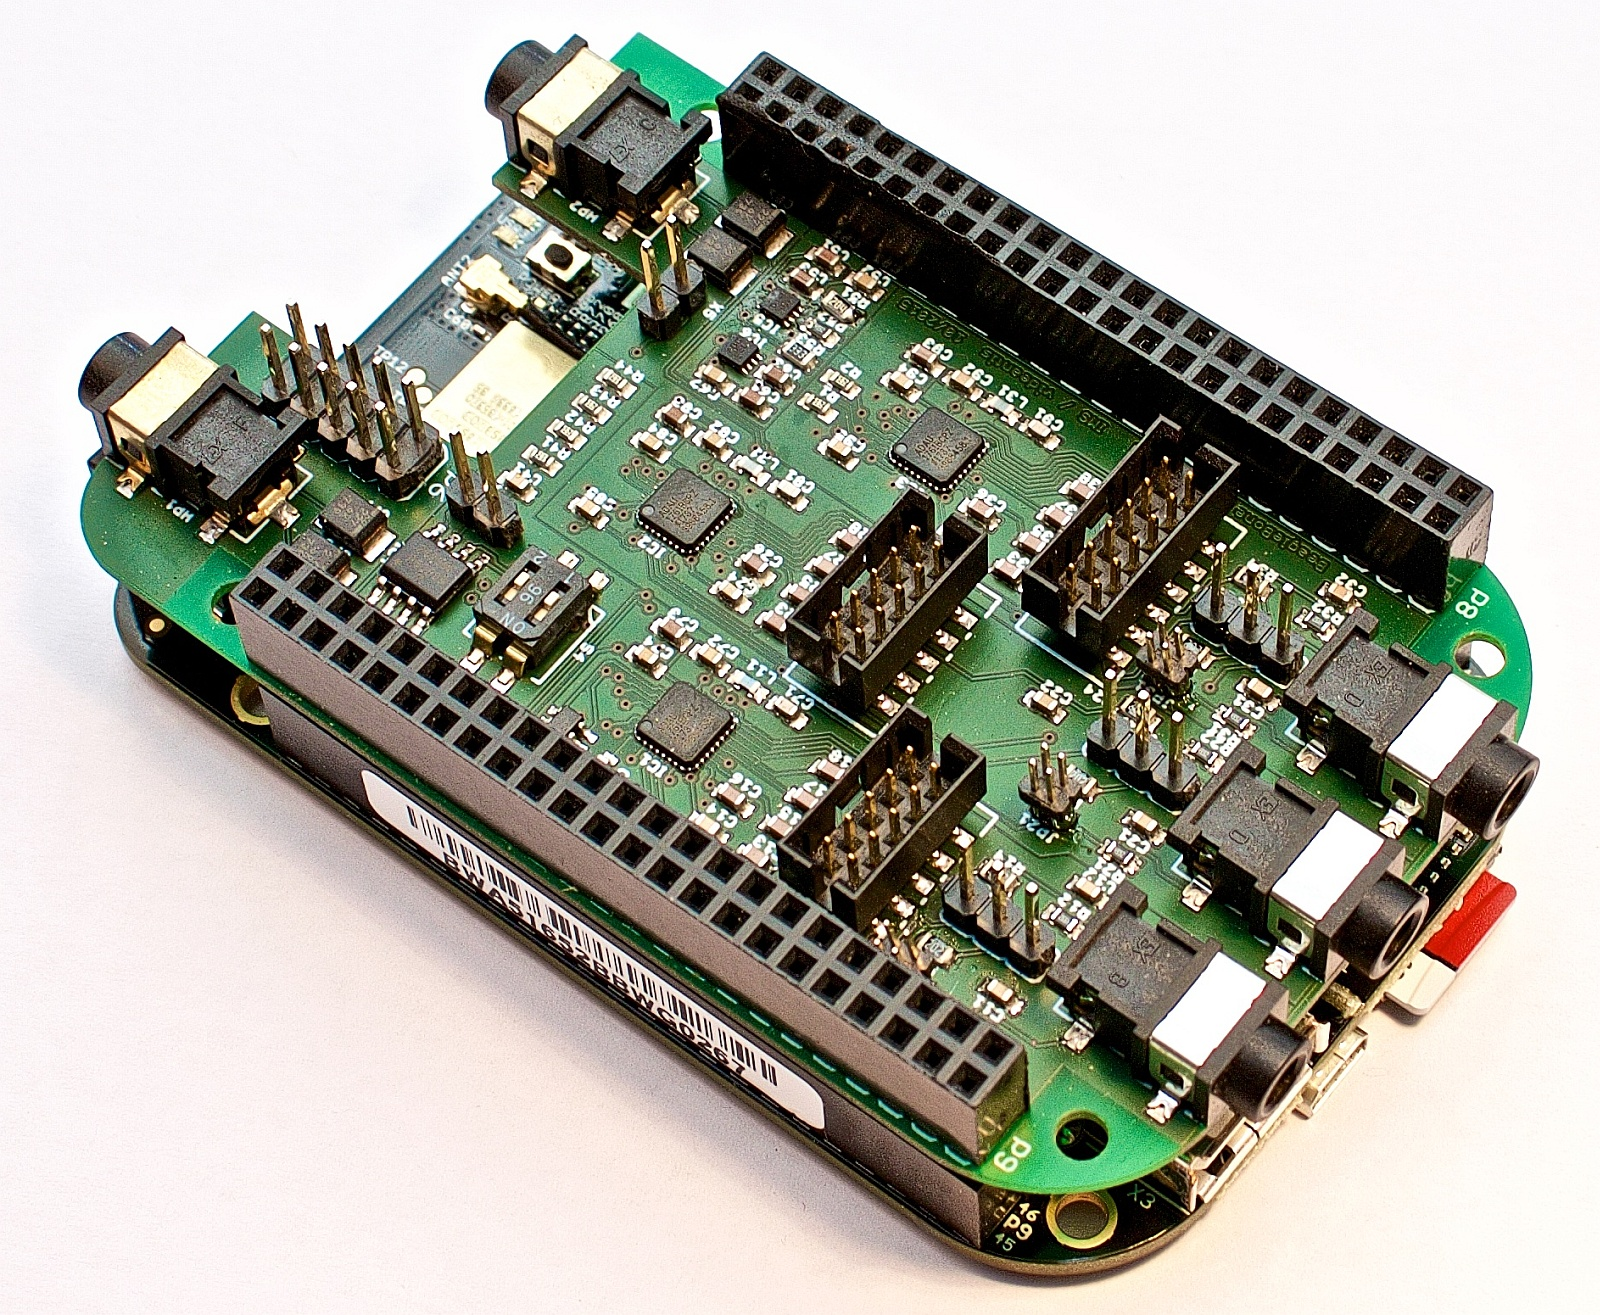 Cape4all on BeagleBone Black wireless